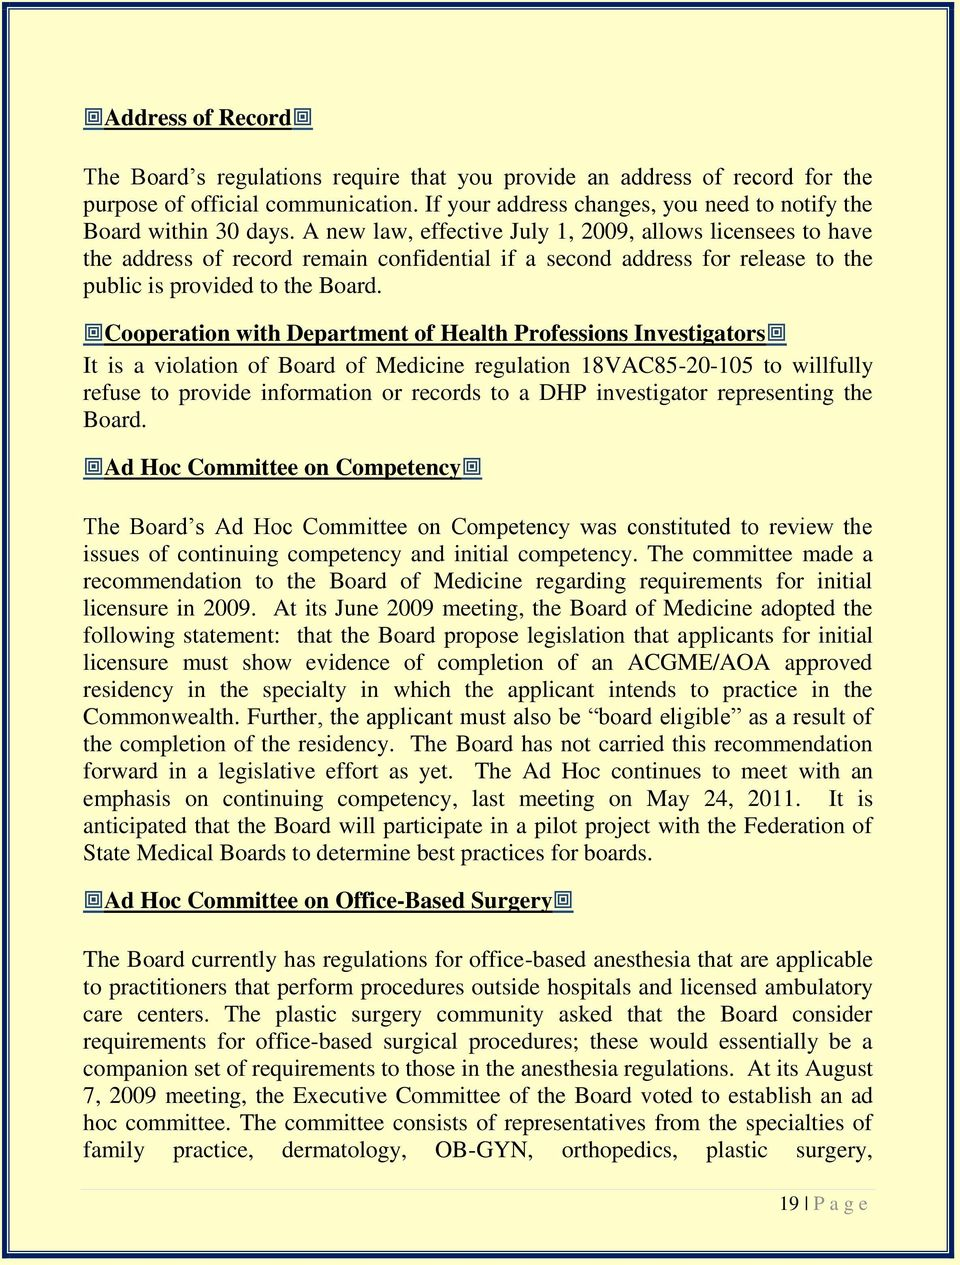 Cooperation with Department of Health Professions Investigators It is a violation of Board of Medicine regulation 18VAC85-20-105 to willfully refuse to provide information or records to a DHP